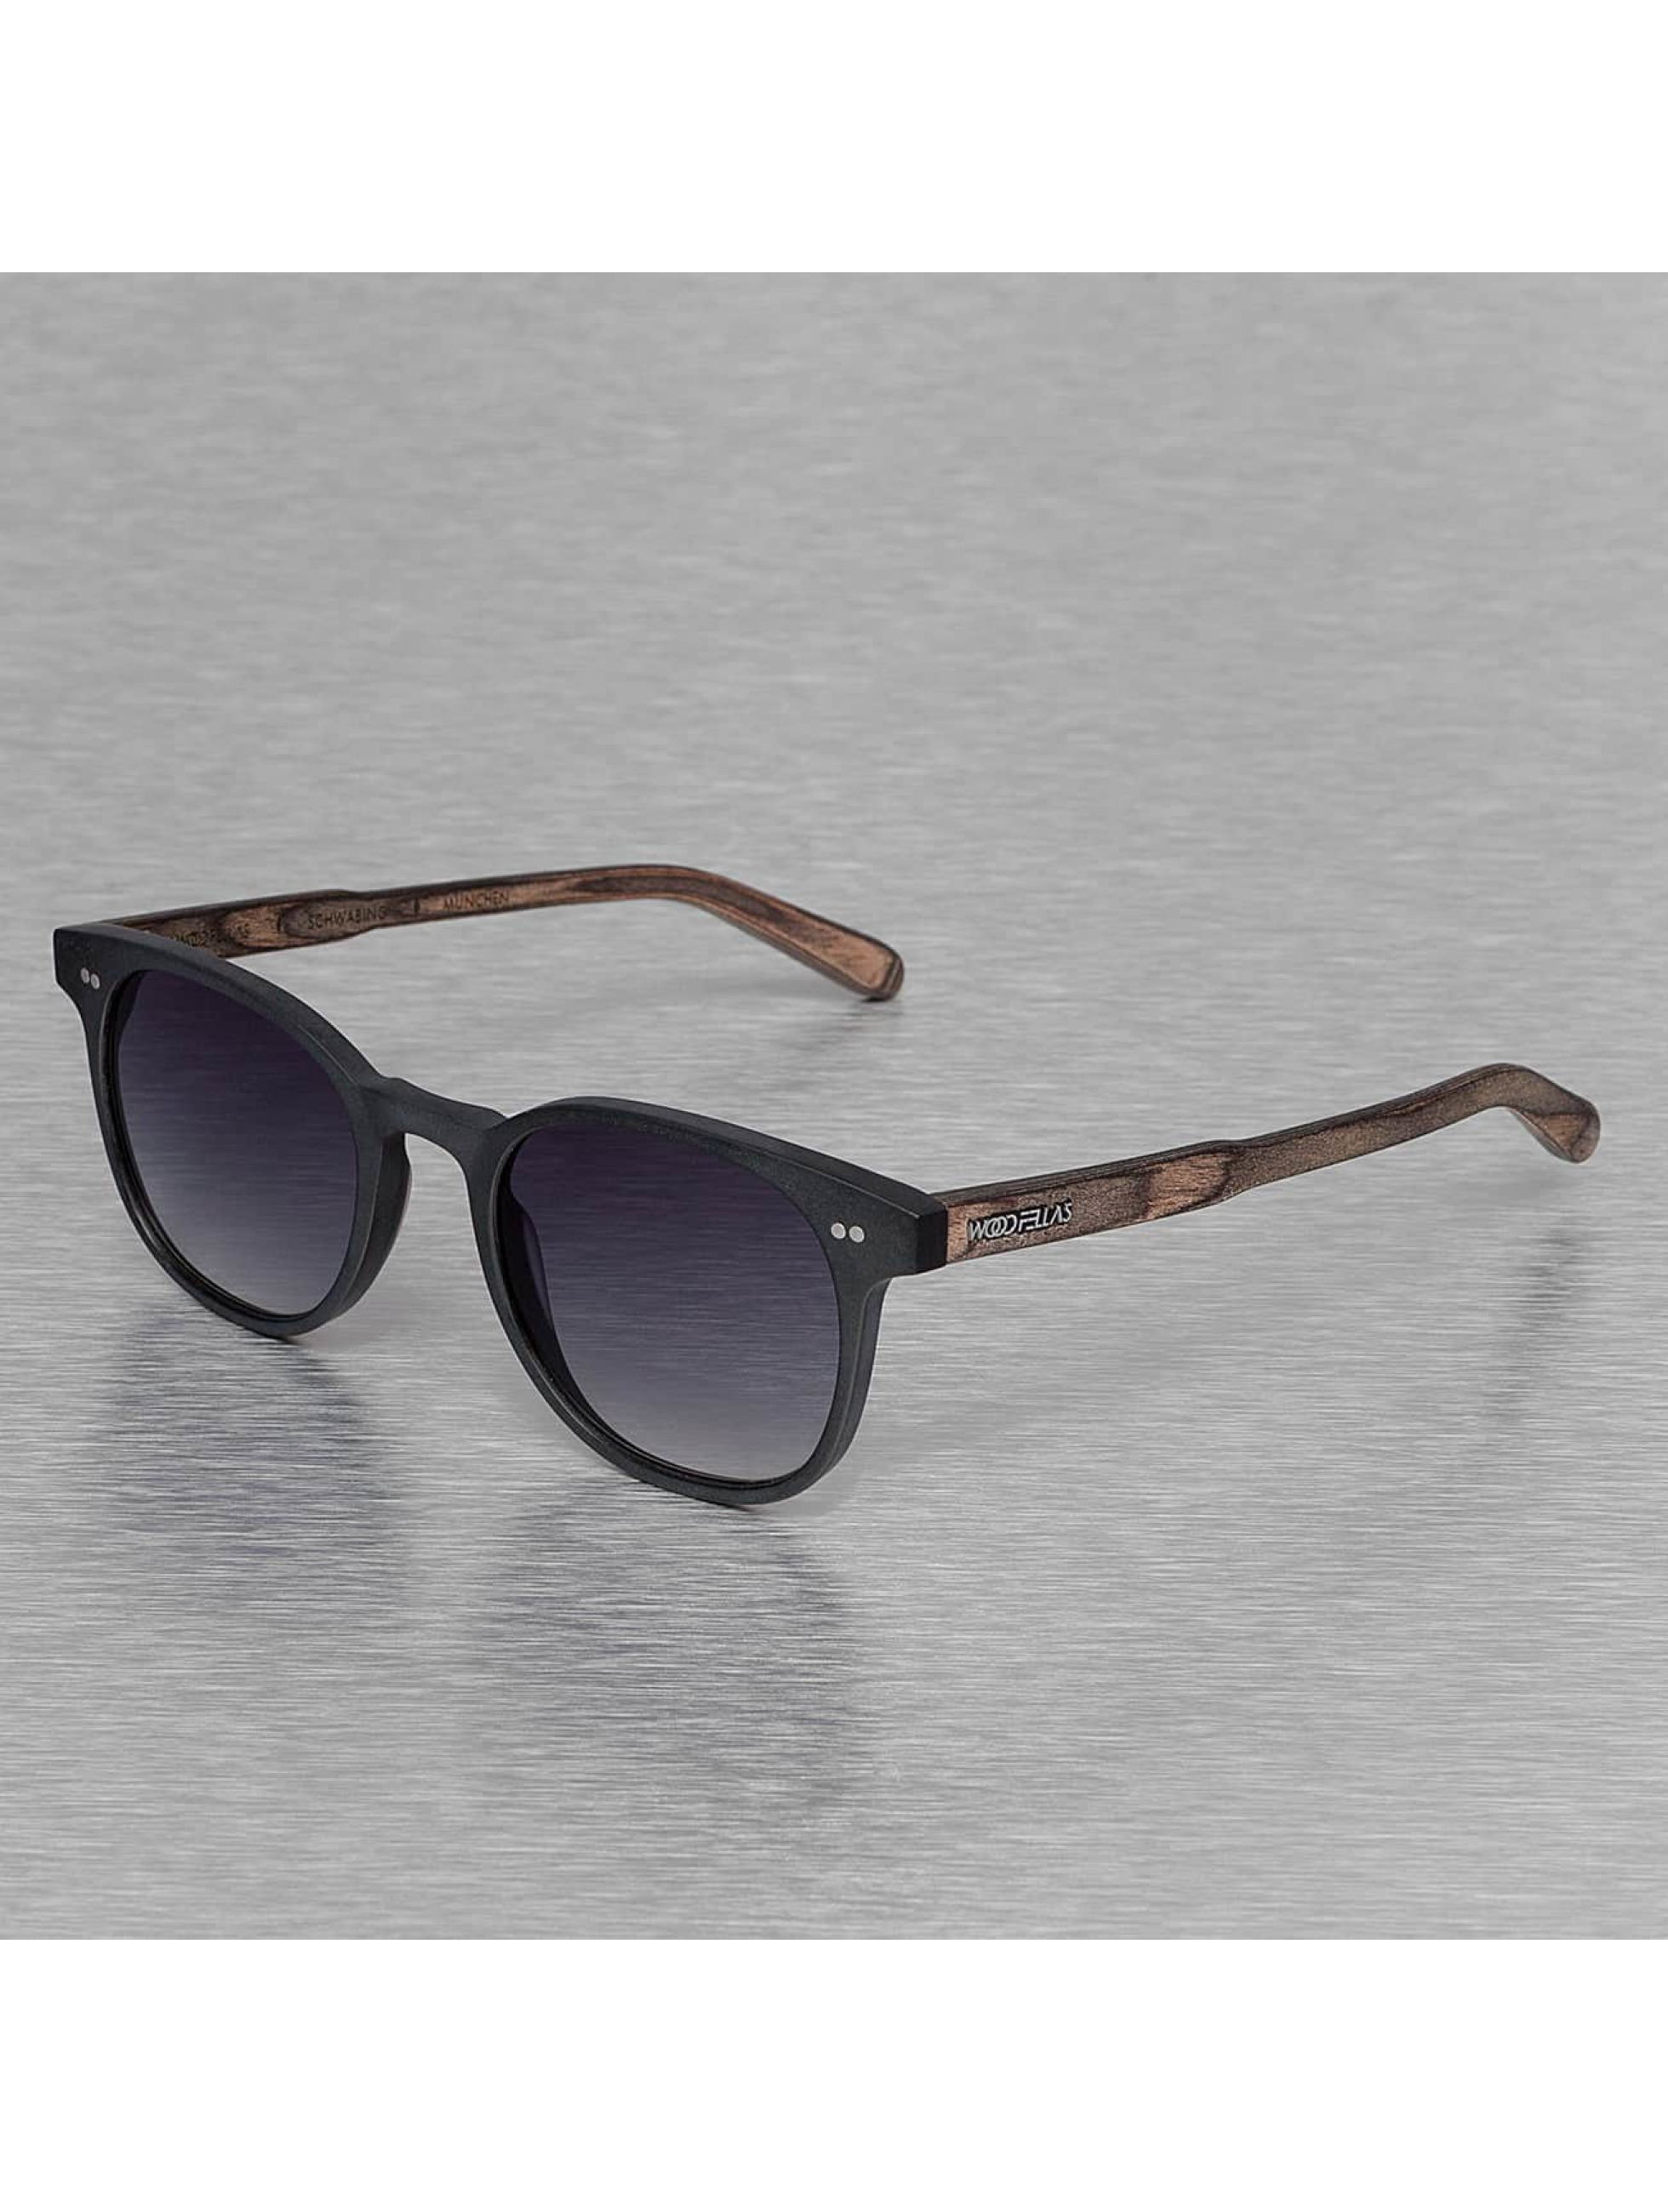 Wood Fellas Eyewear Очки Eyewear Schwabing Polarized Mirror черный